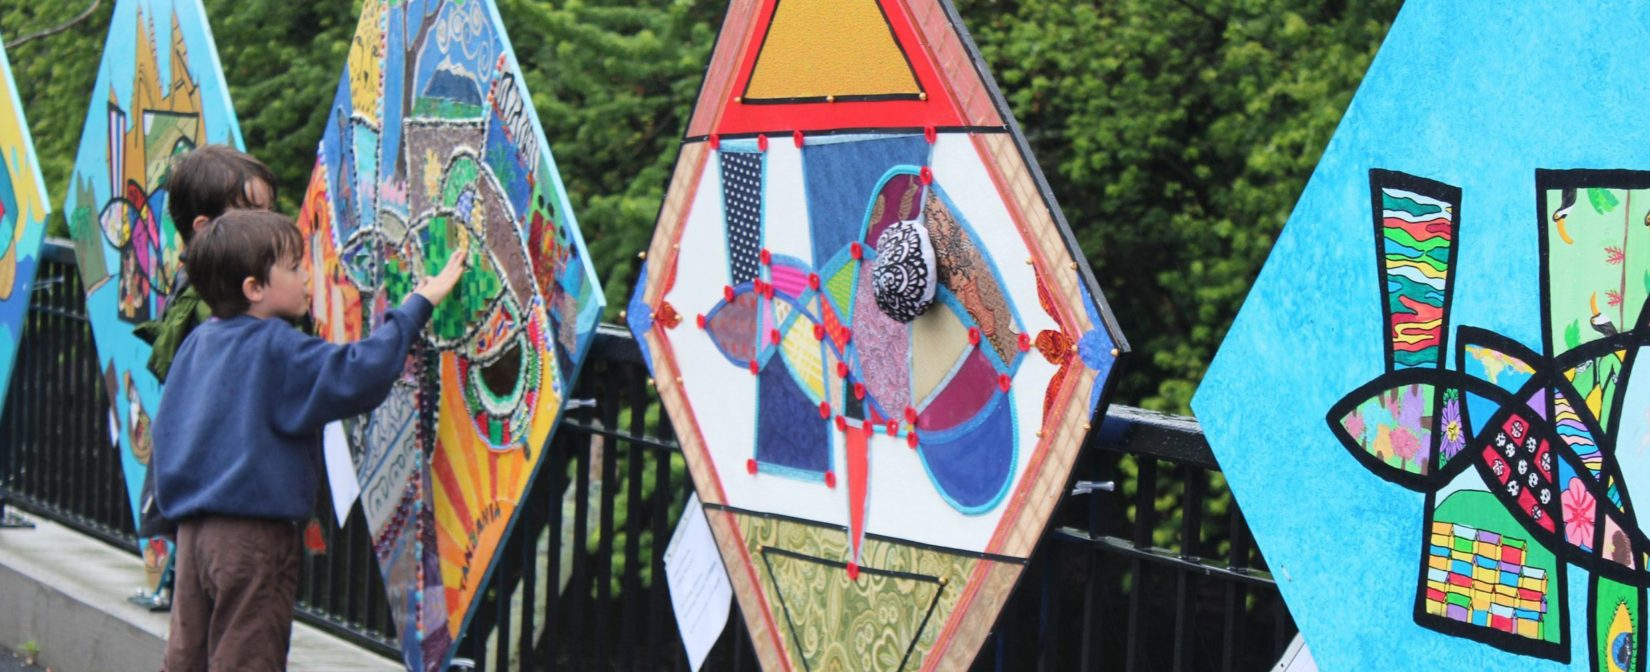 Exploring the art installed by local schools on the Concord River Greenway